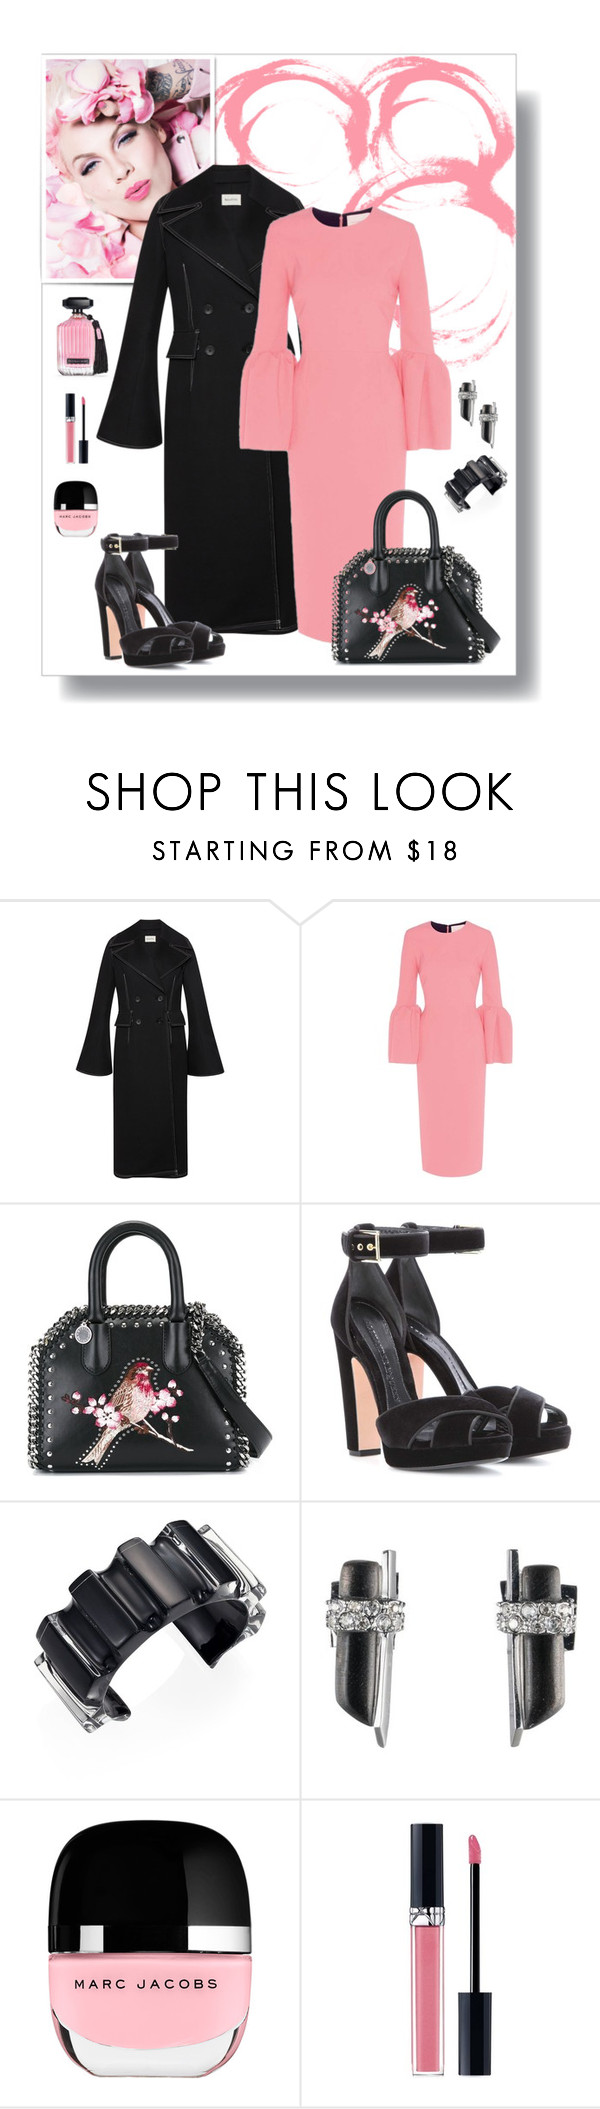 """""""Stella McCartney Falabella Box Bird Bag Look"""" by romaboots-1 ❤ liked on Polyvore featuring Beaufille, Roksanda, STELLA McCARTNEY, Alexander McQueen, Victoria's Secret, Alexis Bittar, Marc Jacobs and Christian Dior"""